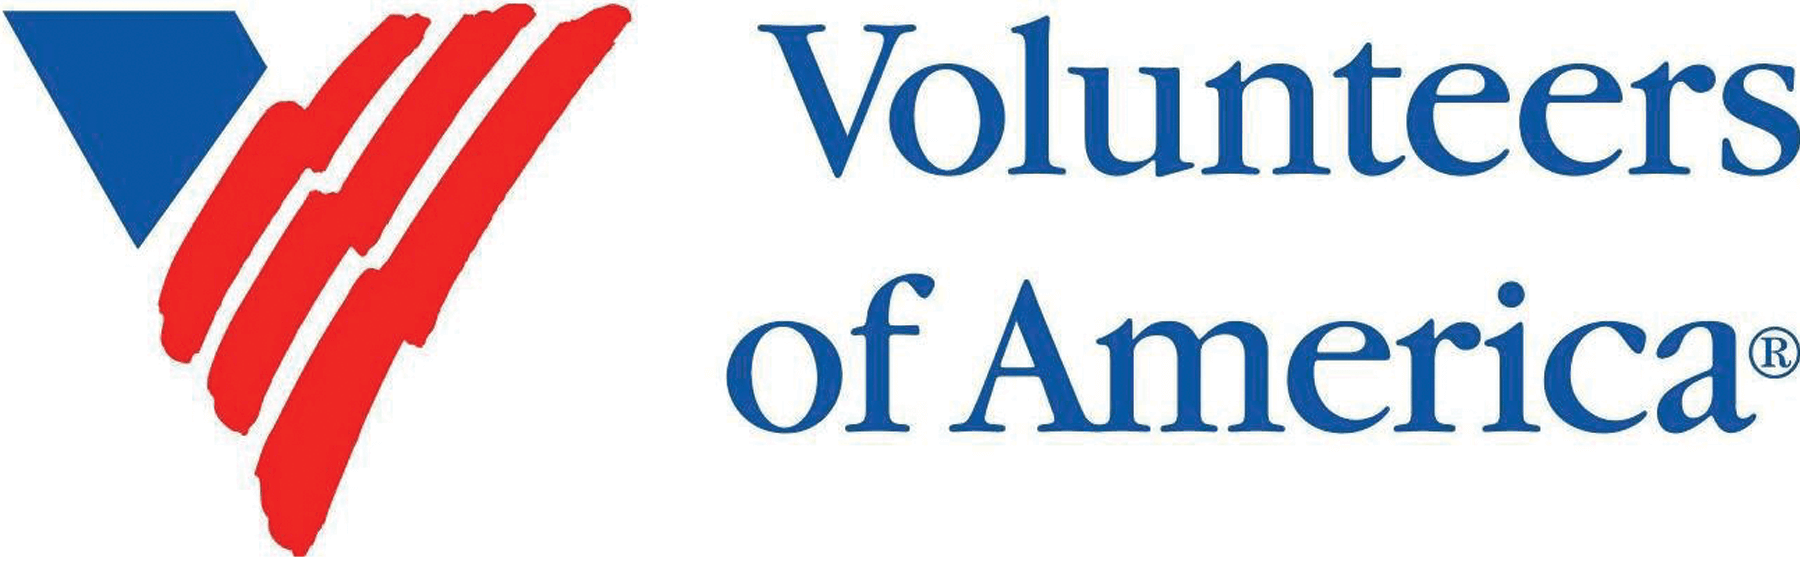 Volunteers for America